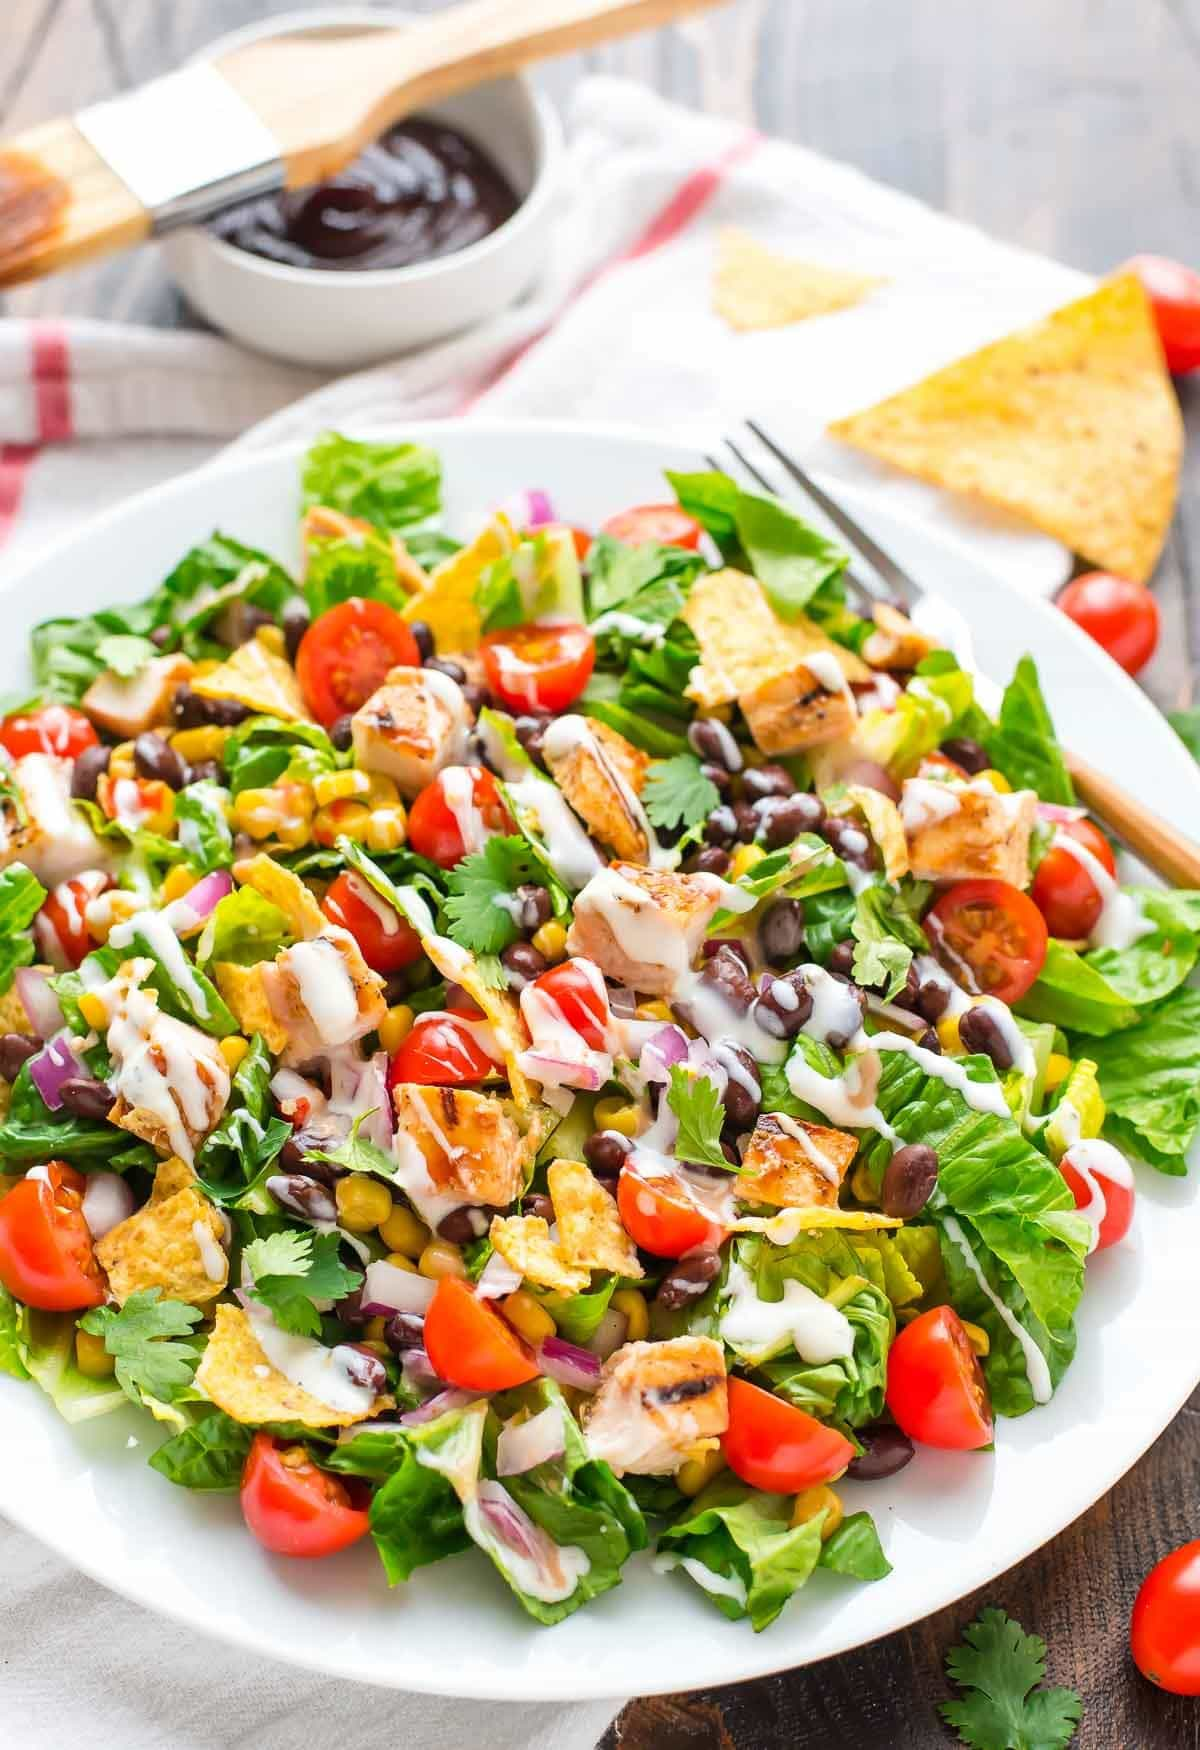 Healthy Fast Food Chicken Salad